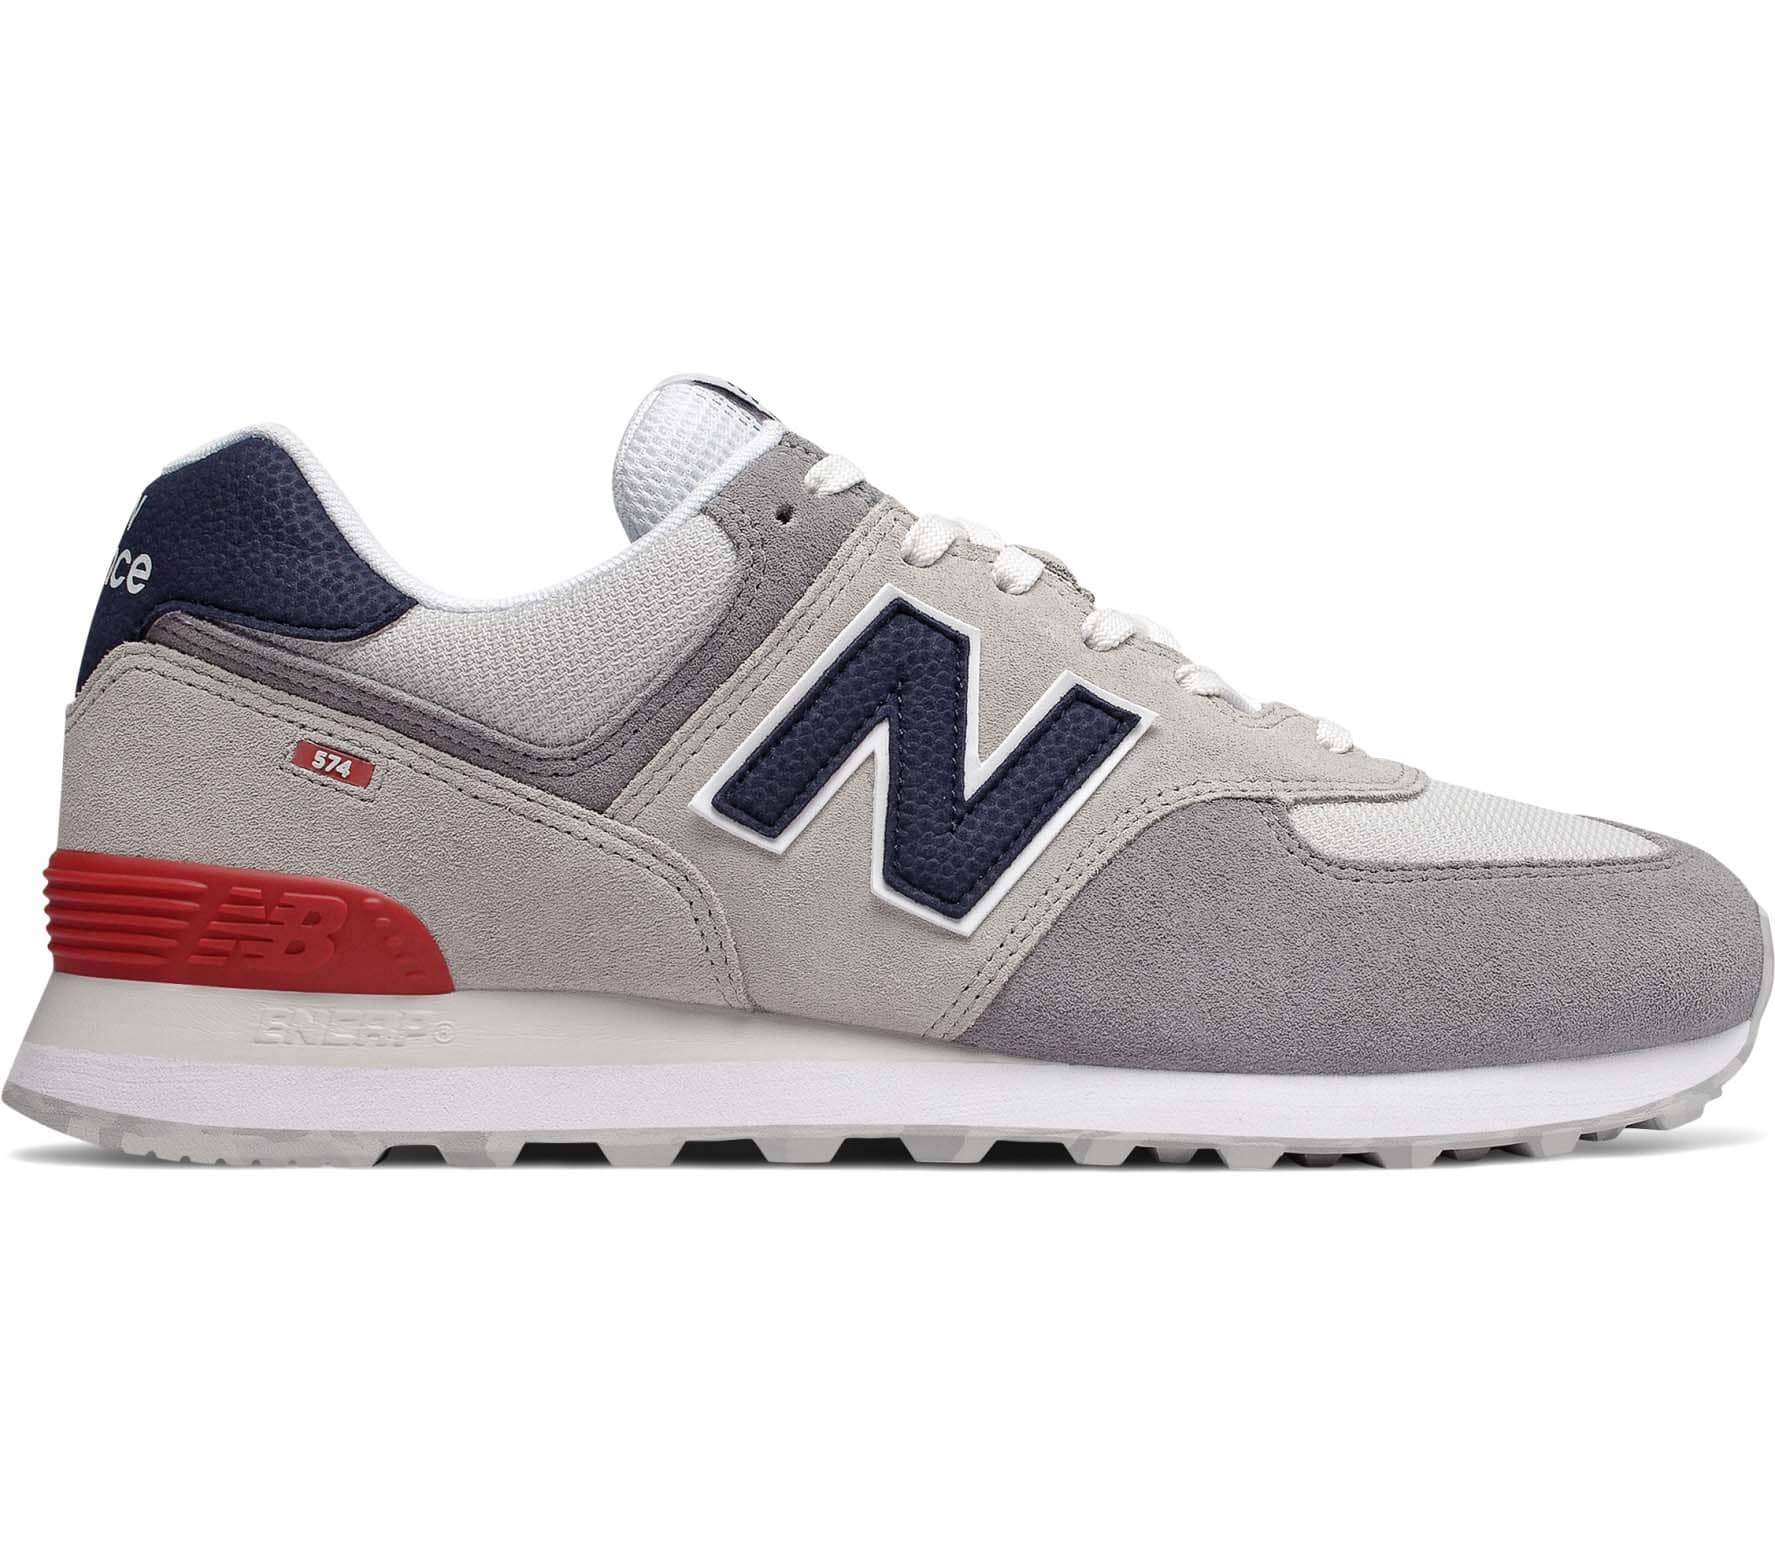 New Balance ML574 D men's sneaker (white)